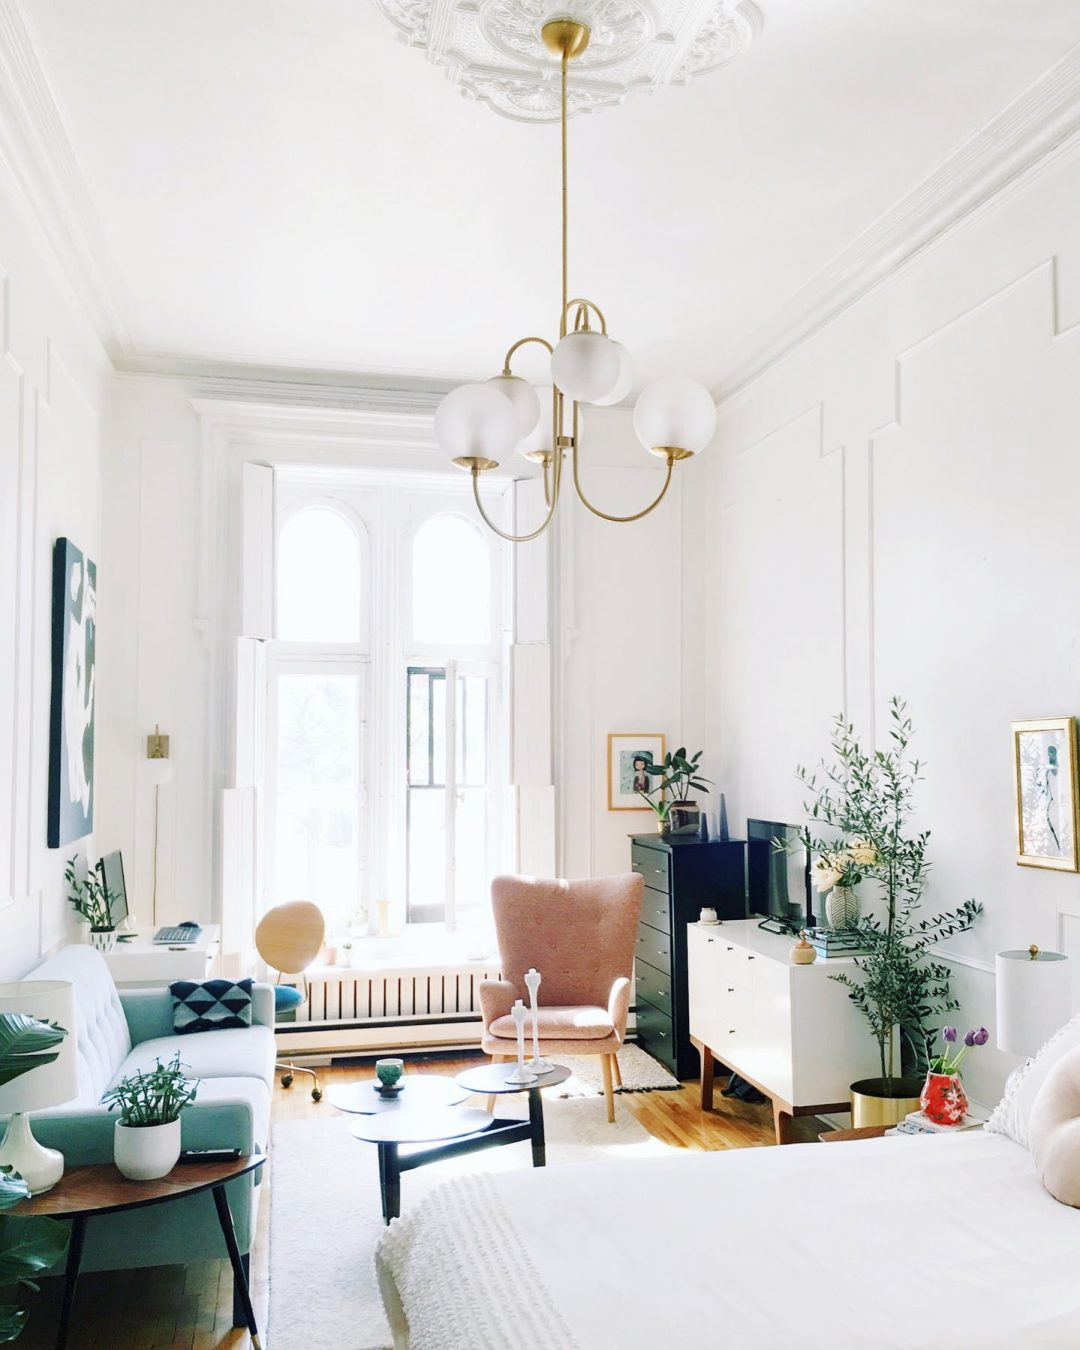 Decorating My Apartment Living Room: 14 Inspiring Minimalist Interior Design Spaces